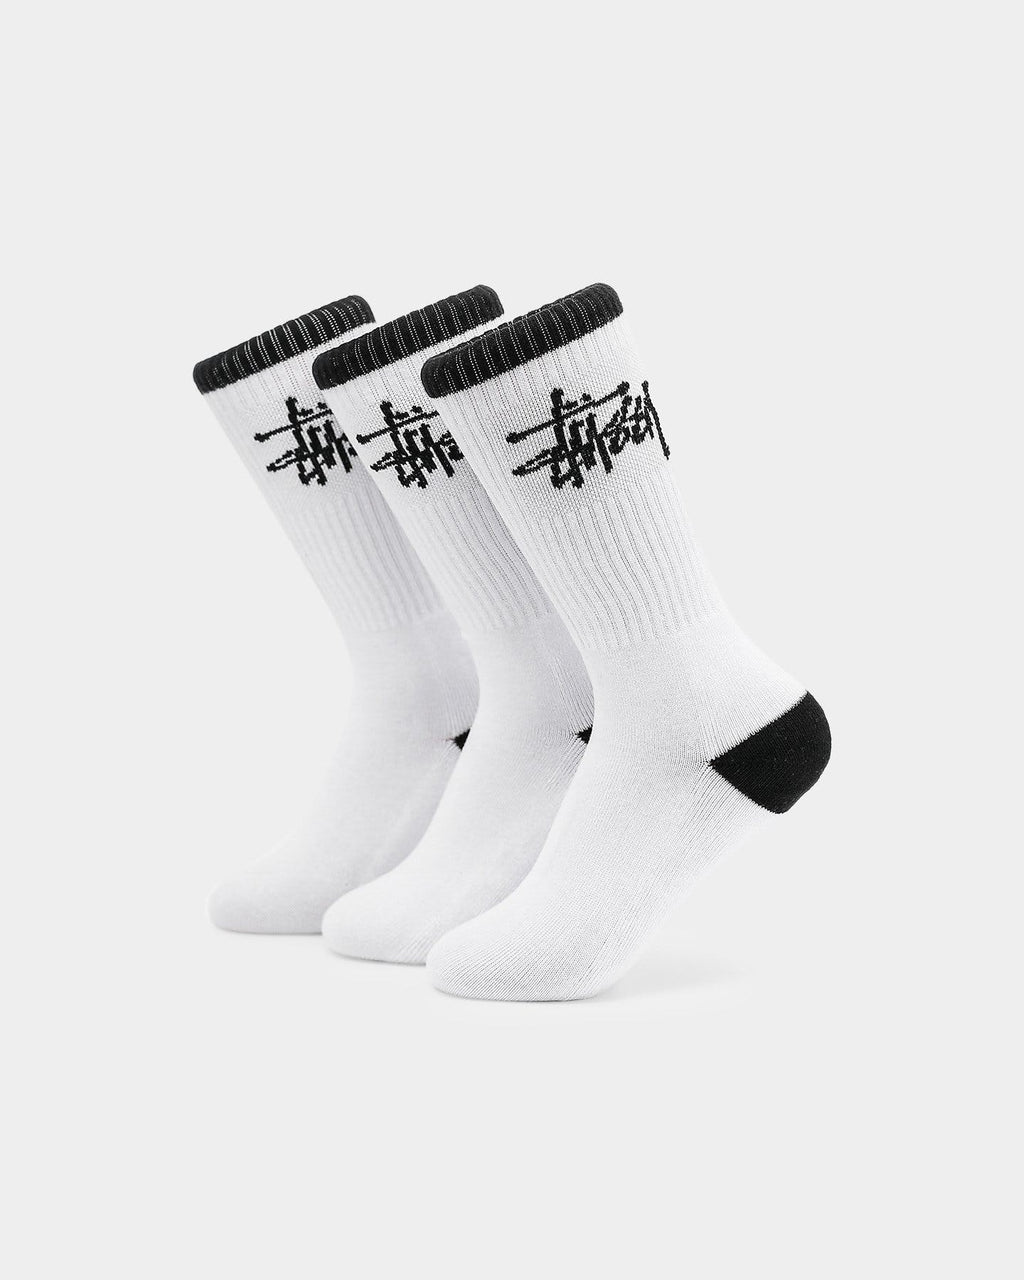 MENS GRAFFITI CREW SOCKS 3PK